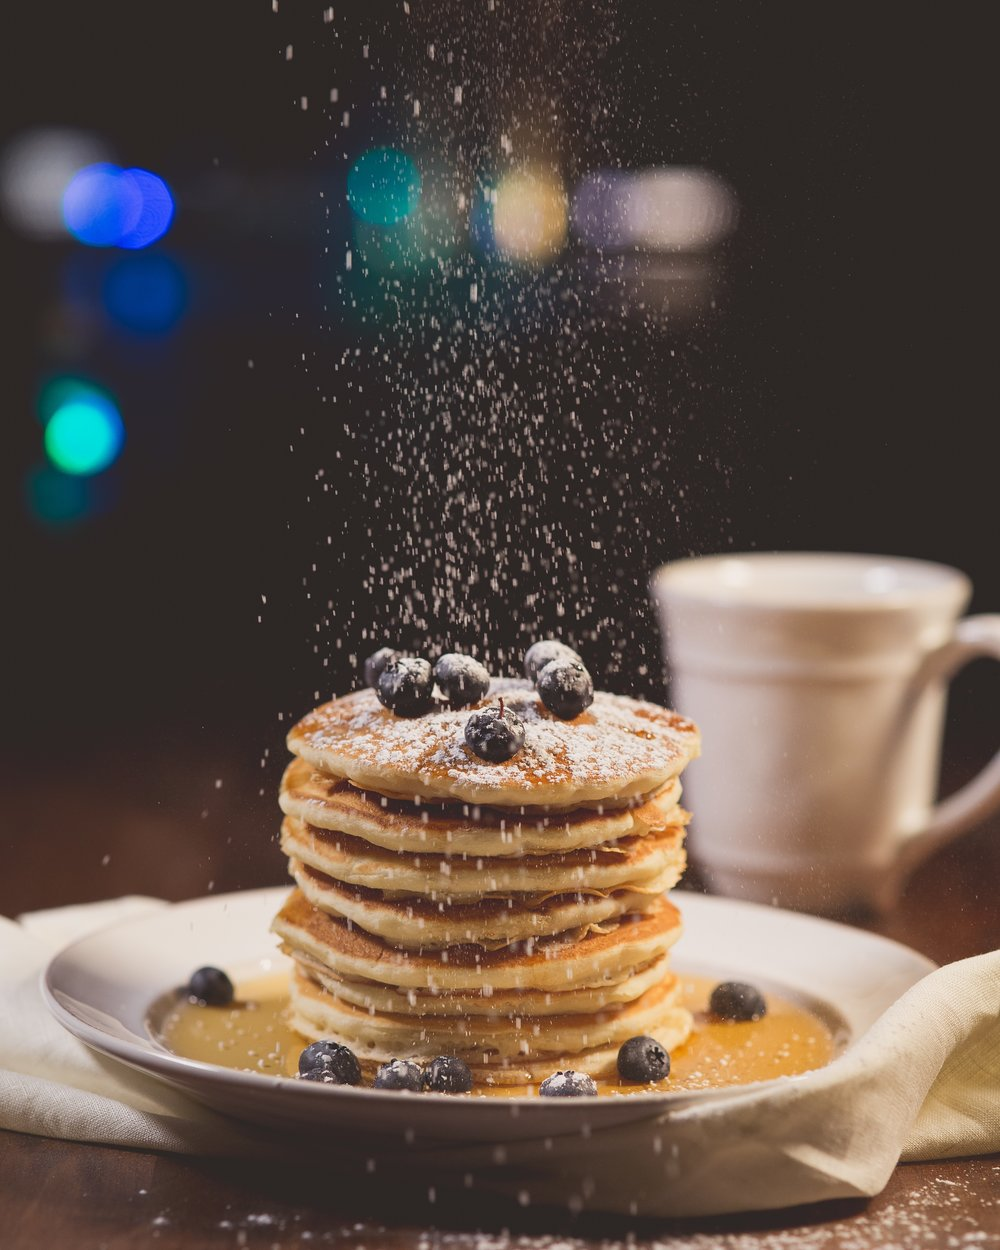 Pancakes may have been eaten in the writing of this article ;) sometimes you need to live a little right?